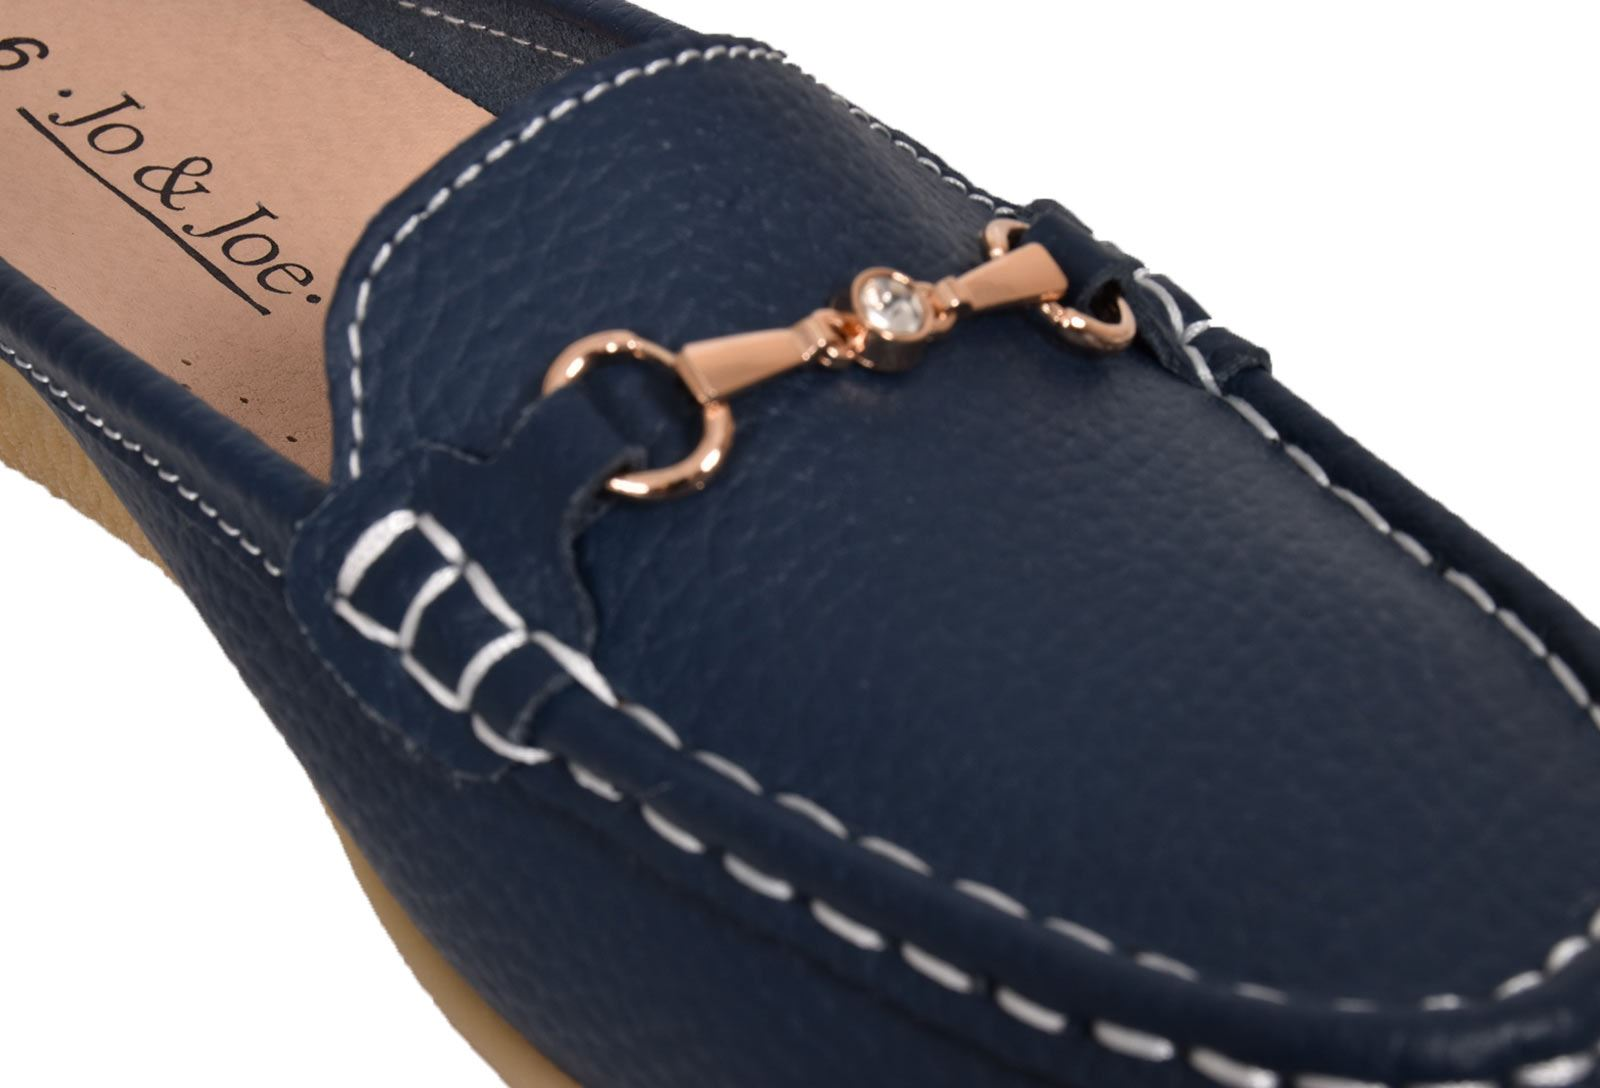 Ladies-Leather-Loafer-Mules-Comfort-Shoes-Womens-Slider-Moccasins-Shoes thumbnail 31